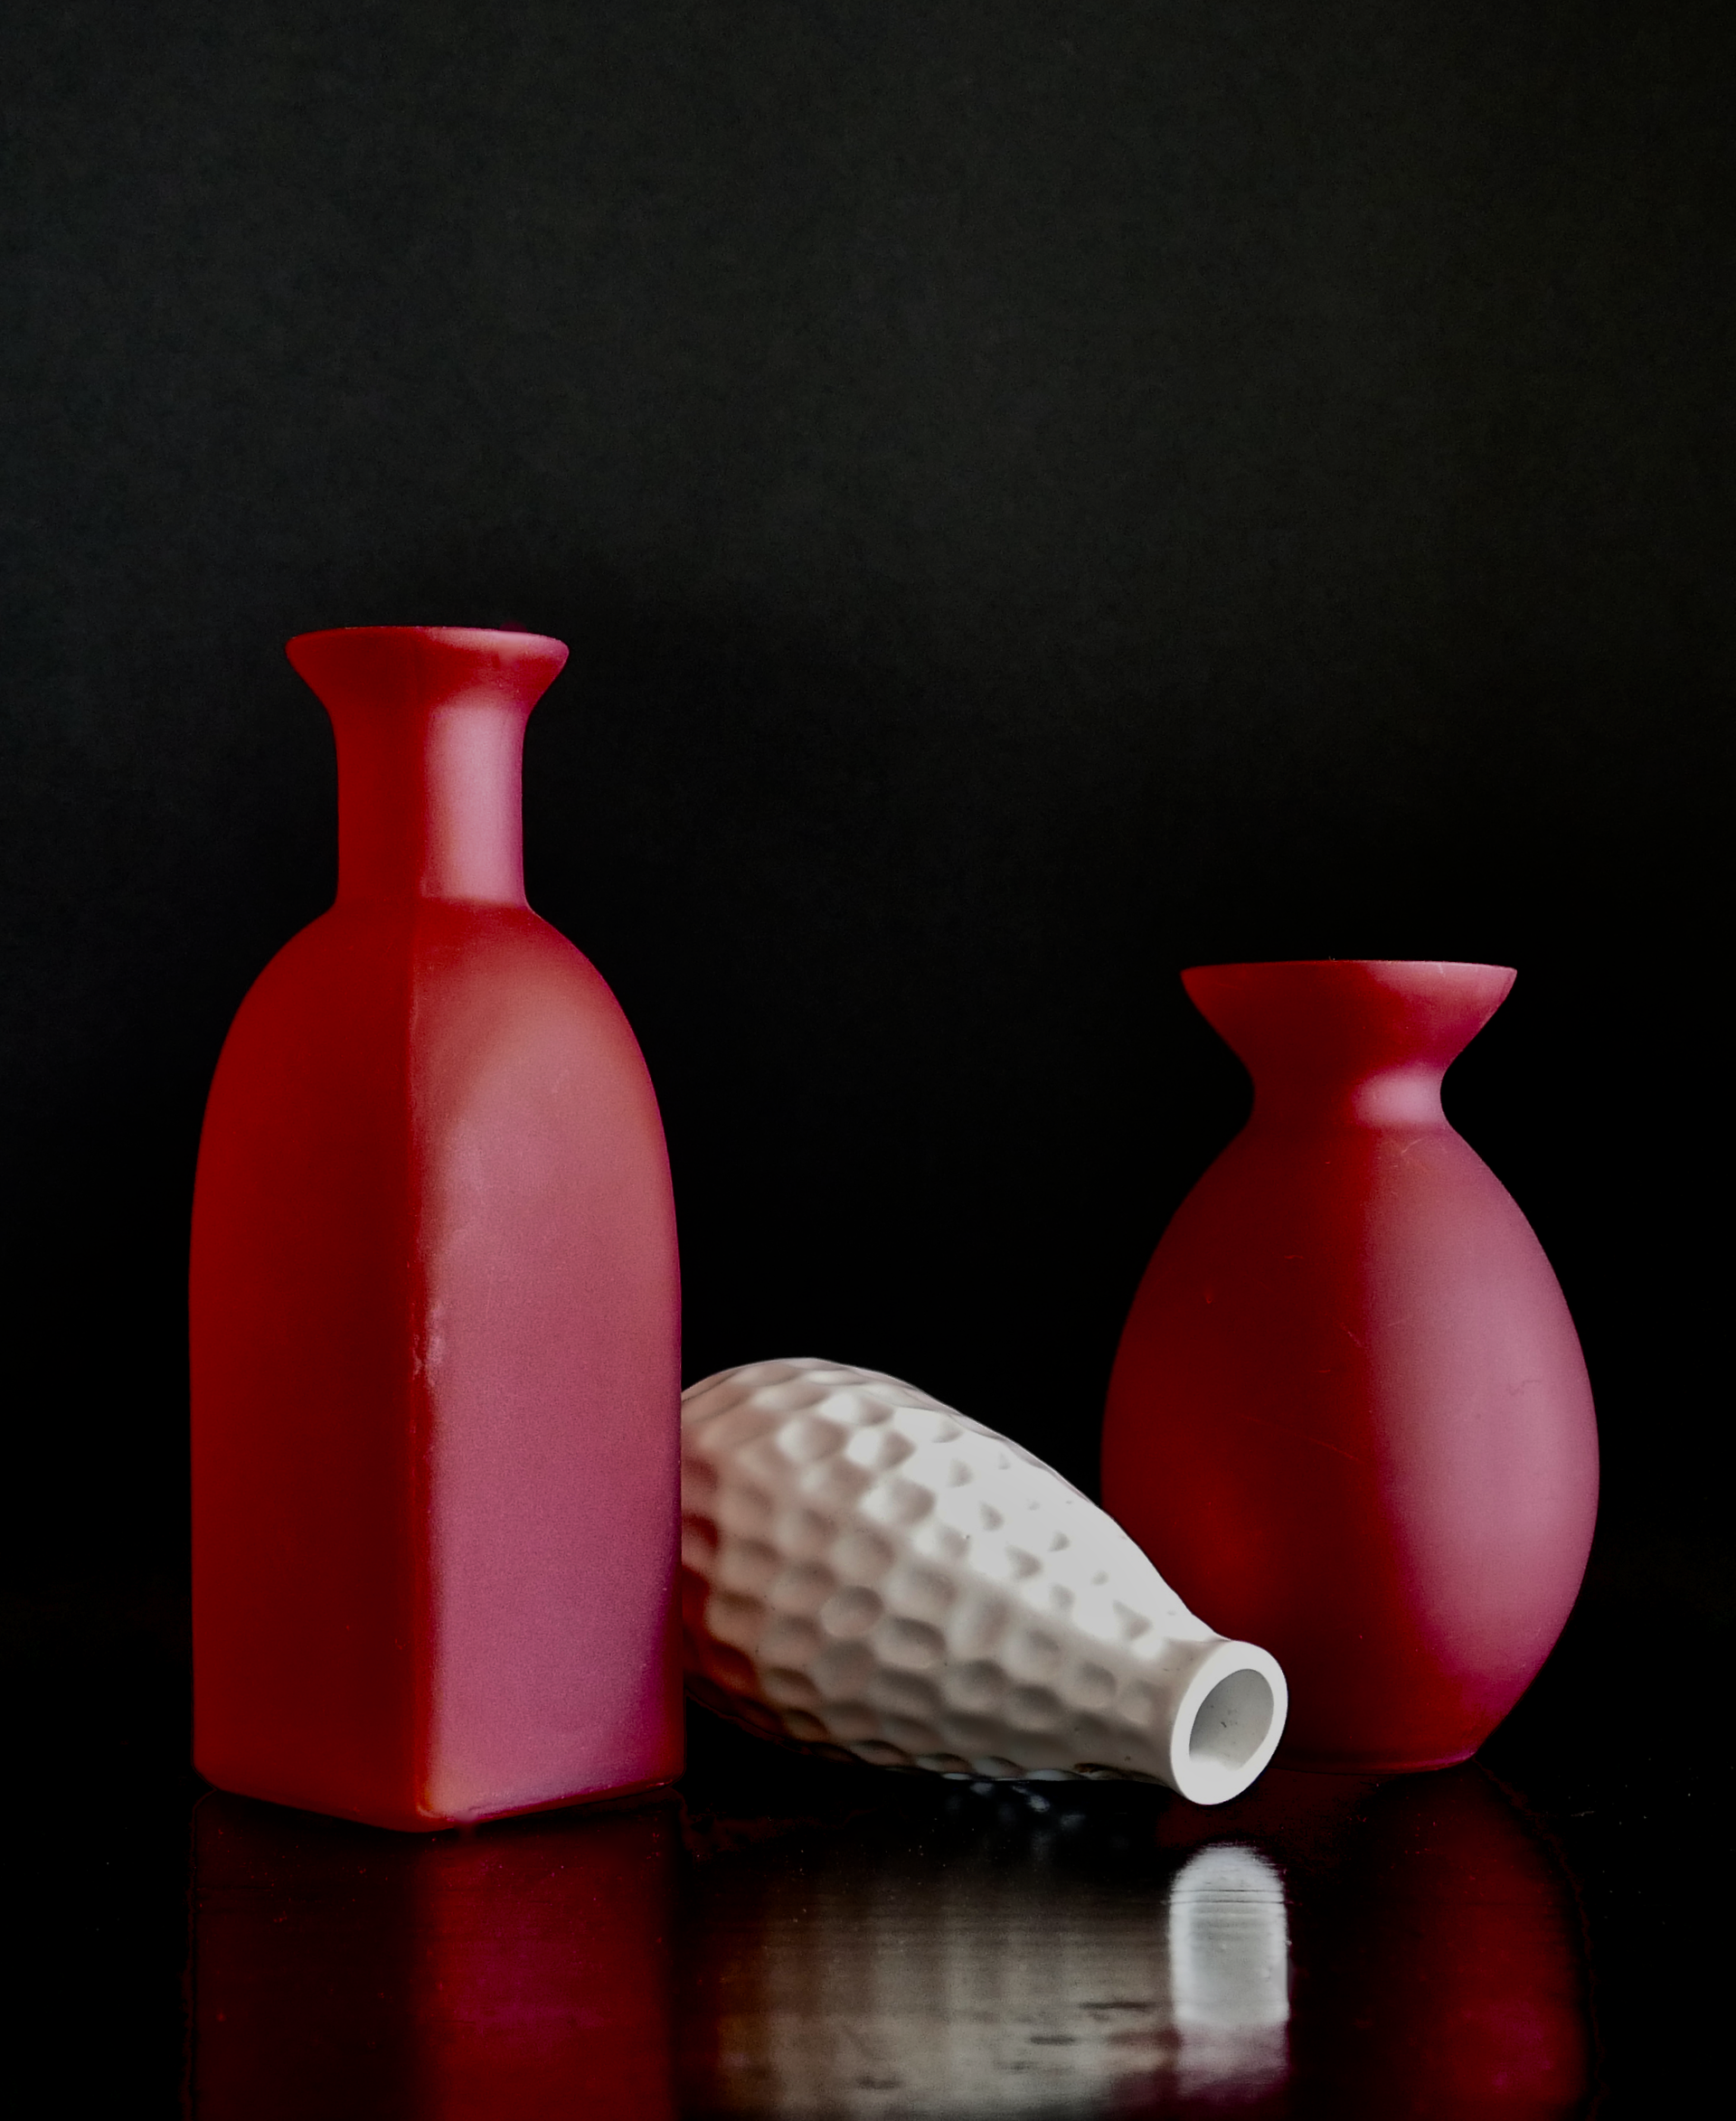 Red Vessels and White Vase